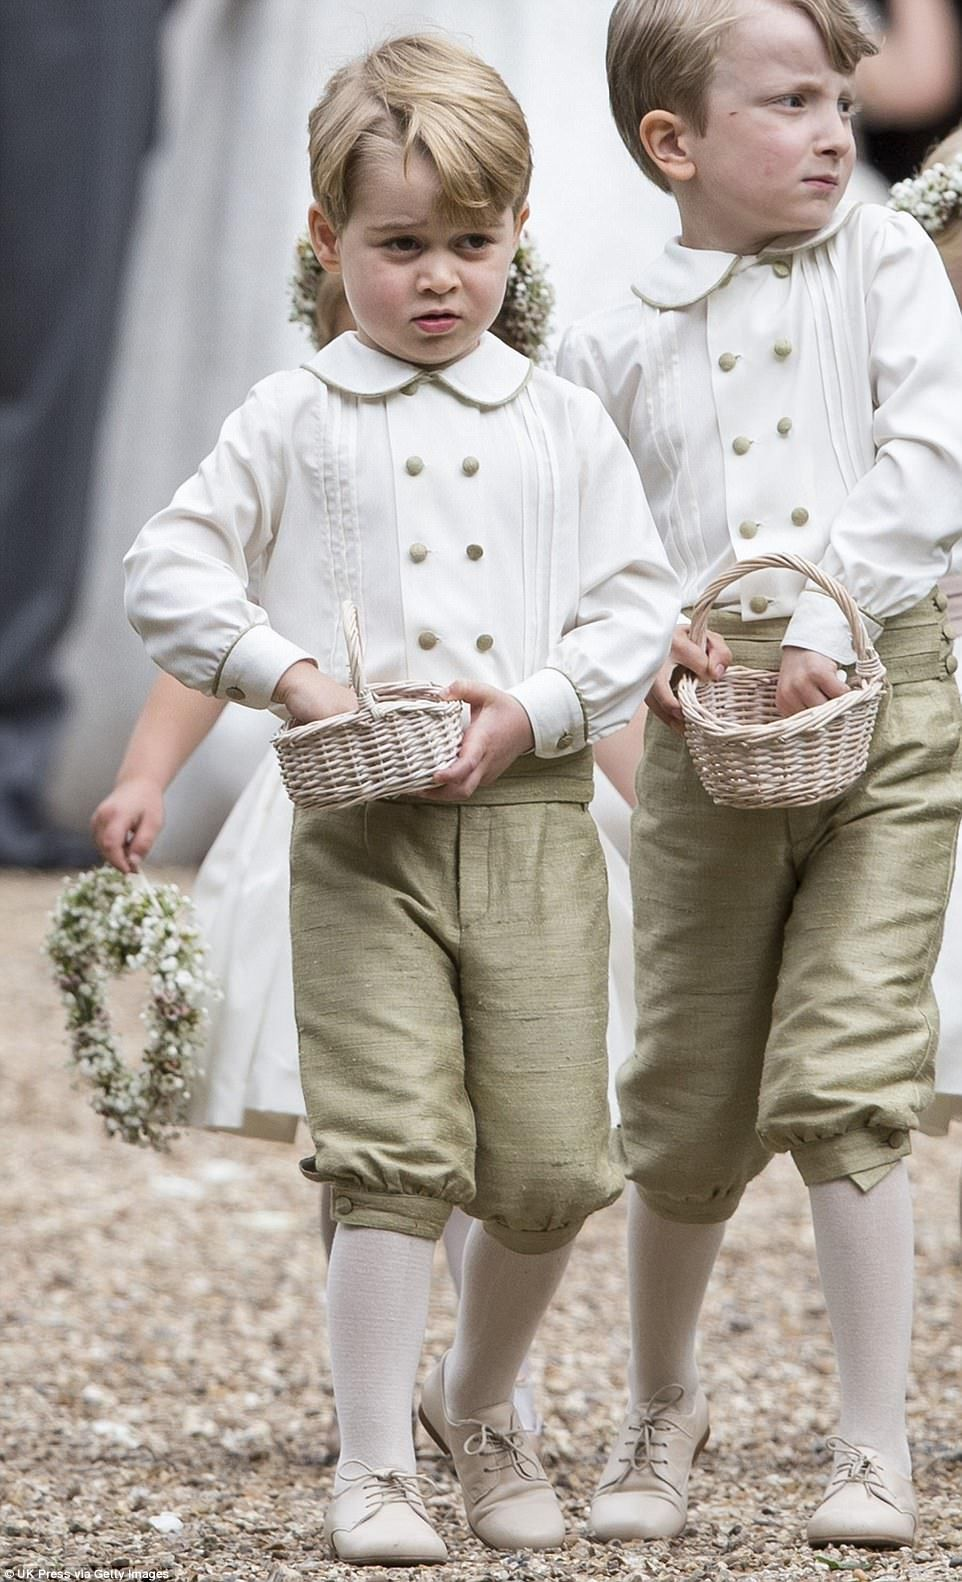 Pippa Middleton And James Matthews Leave The Church As Man And Wife Pippa Middleton Wedding Pippas Wedding Prince George